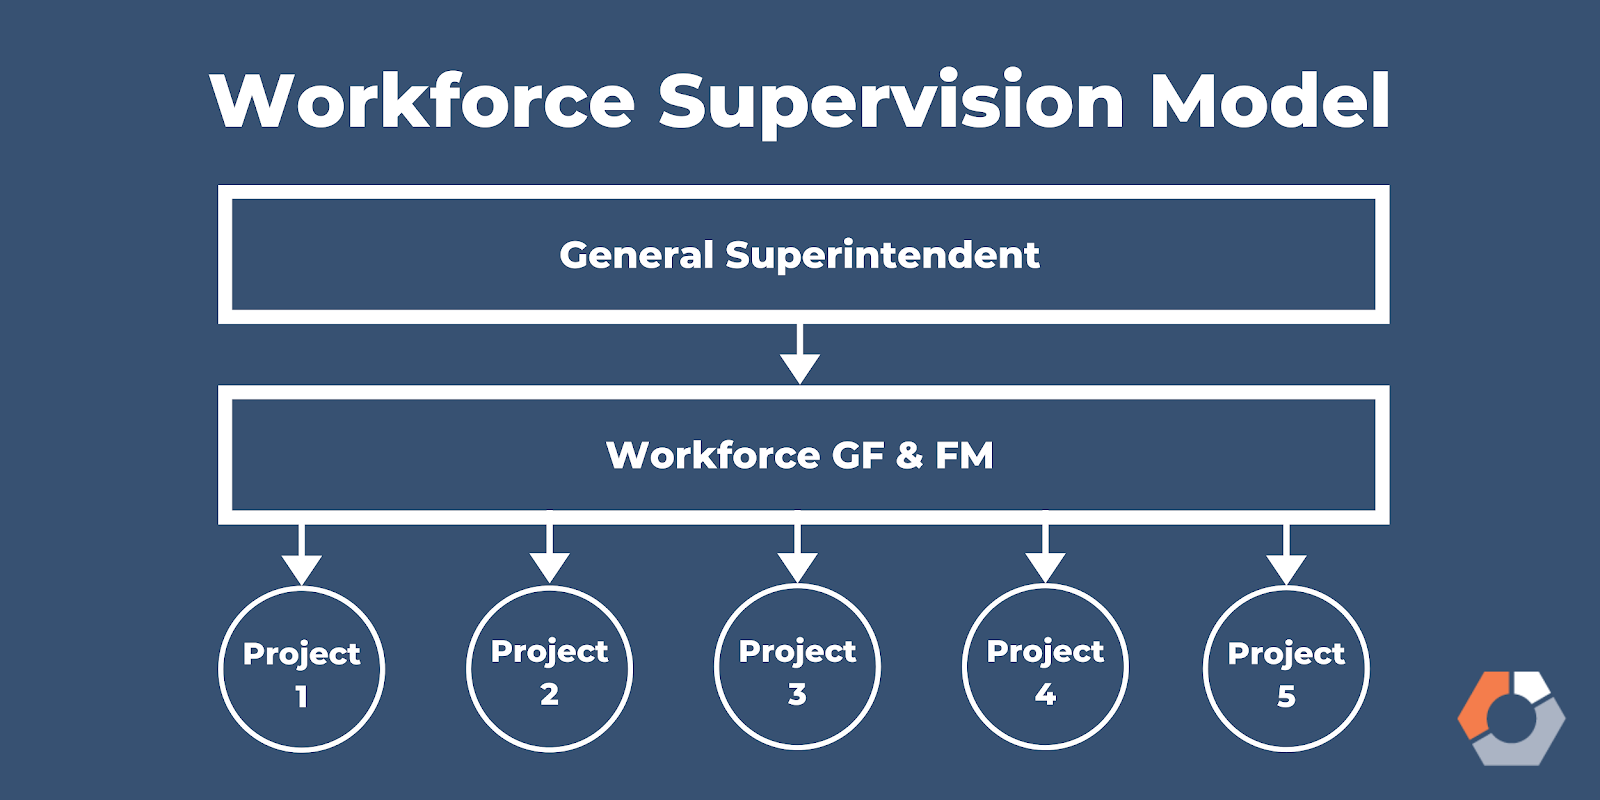 The workforce supervision model outlines the general superintendent at the top and the workforce GF and FM in the middle overseeing all of the projects.